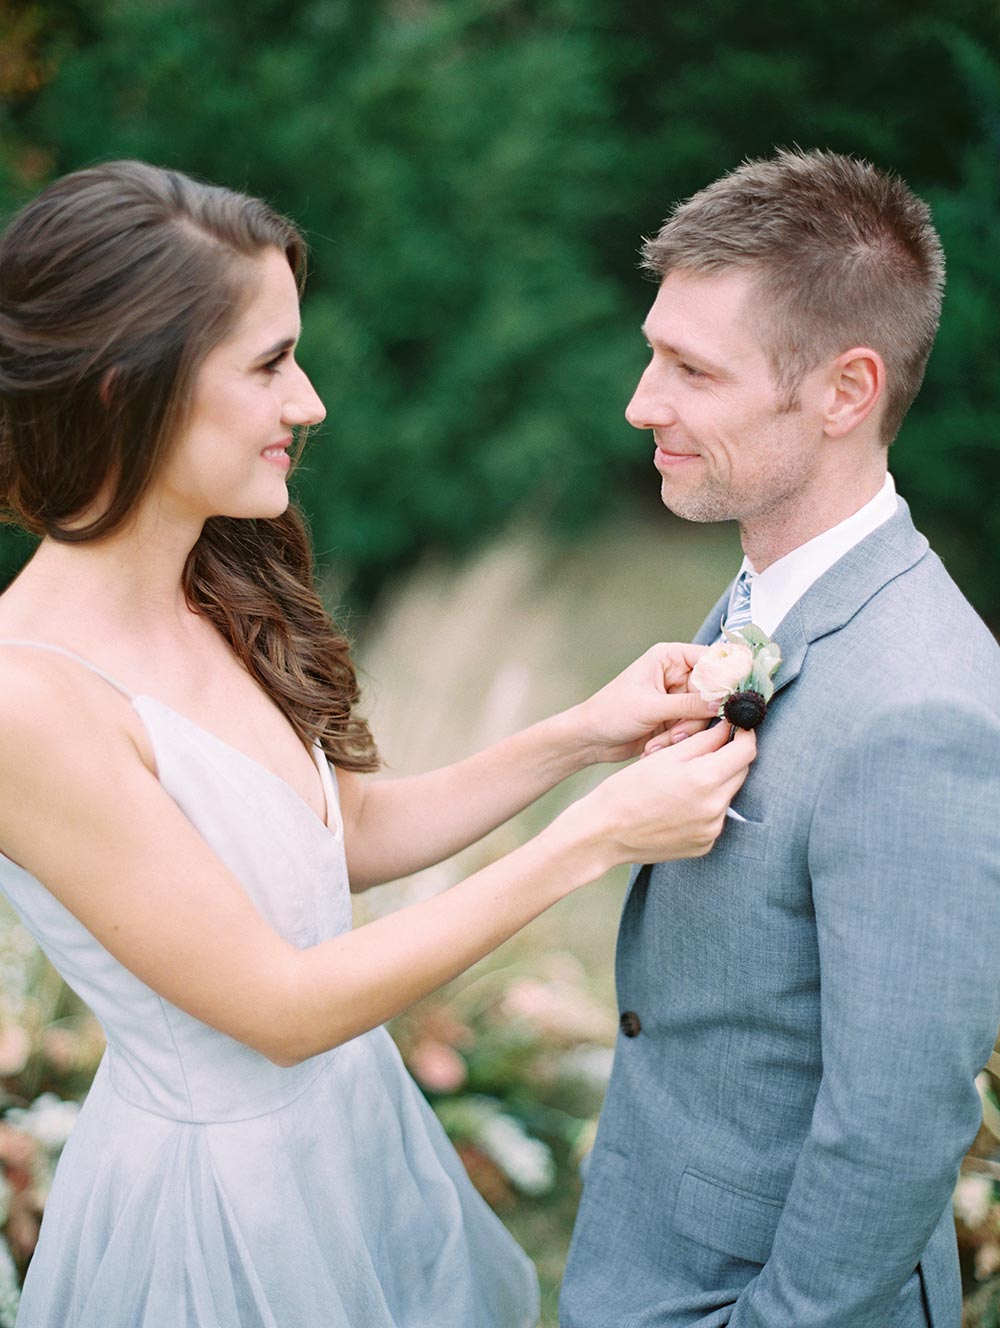 layered silk organza wedding dress and gray groom suit